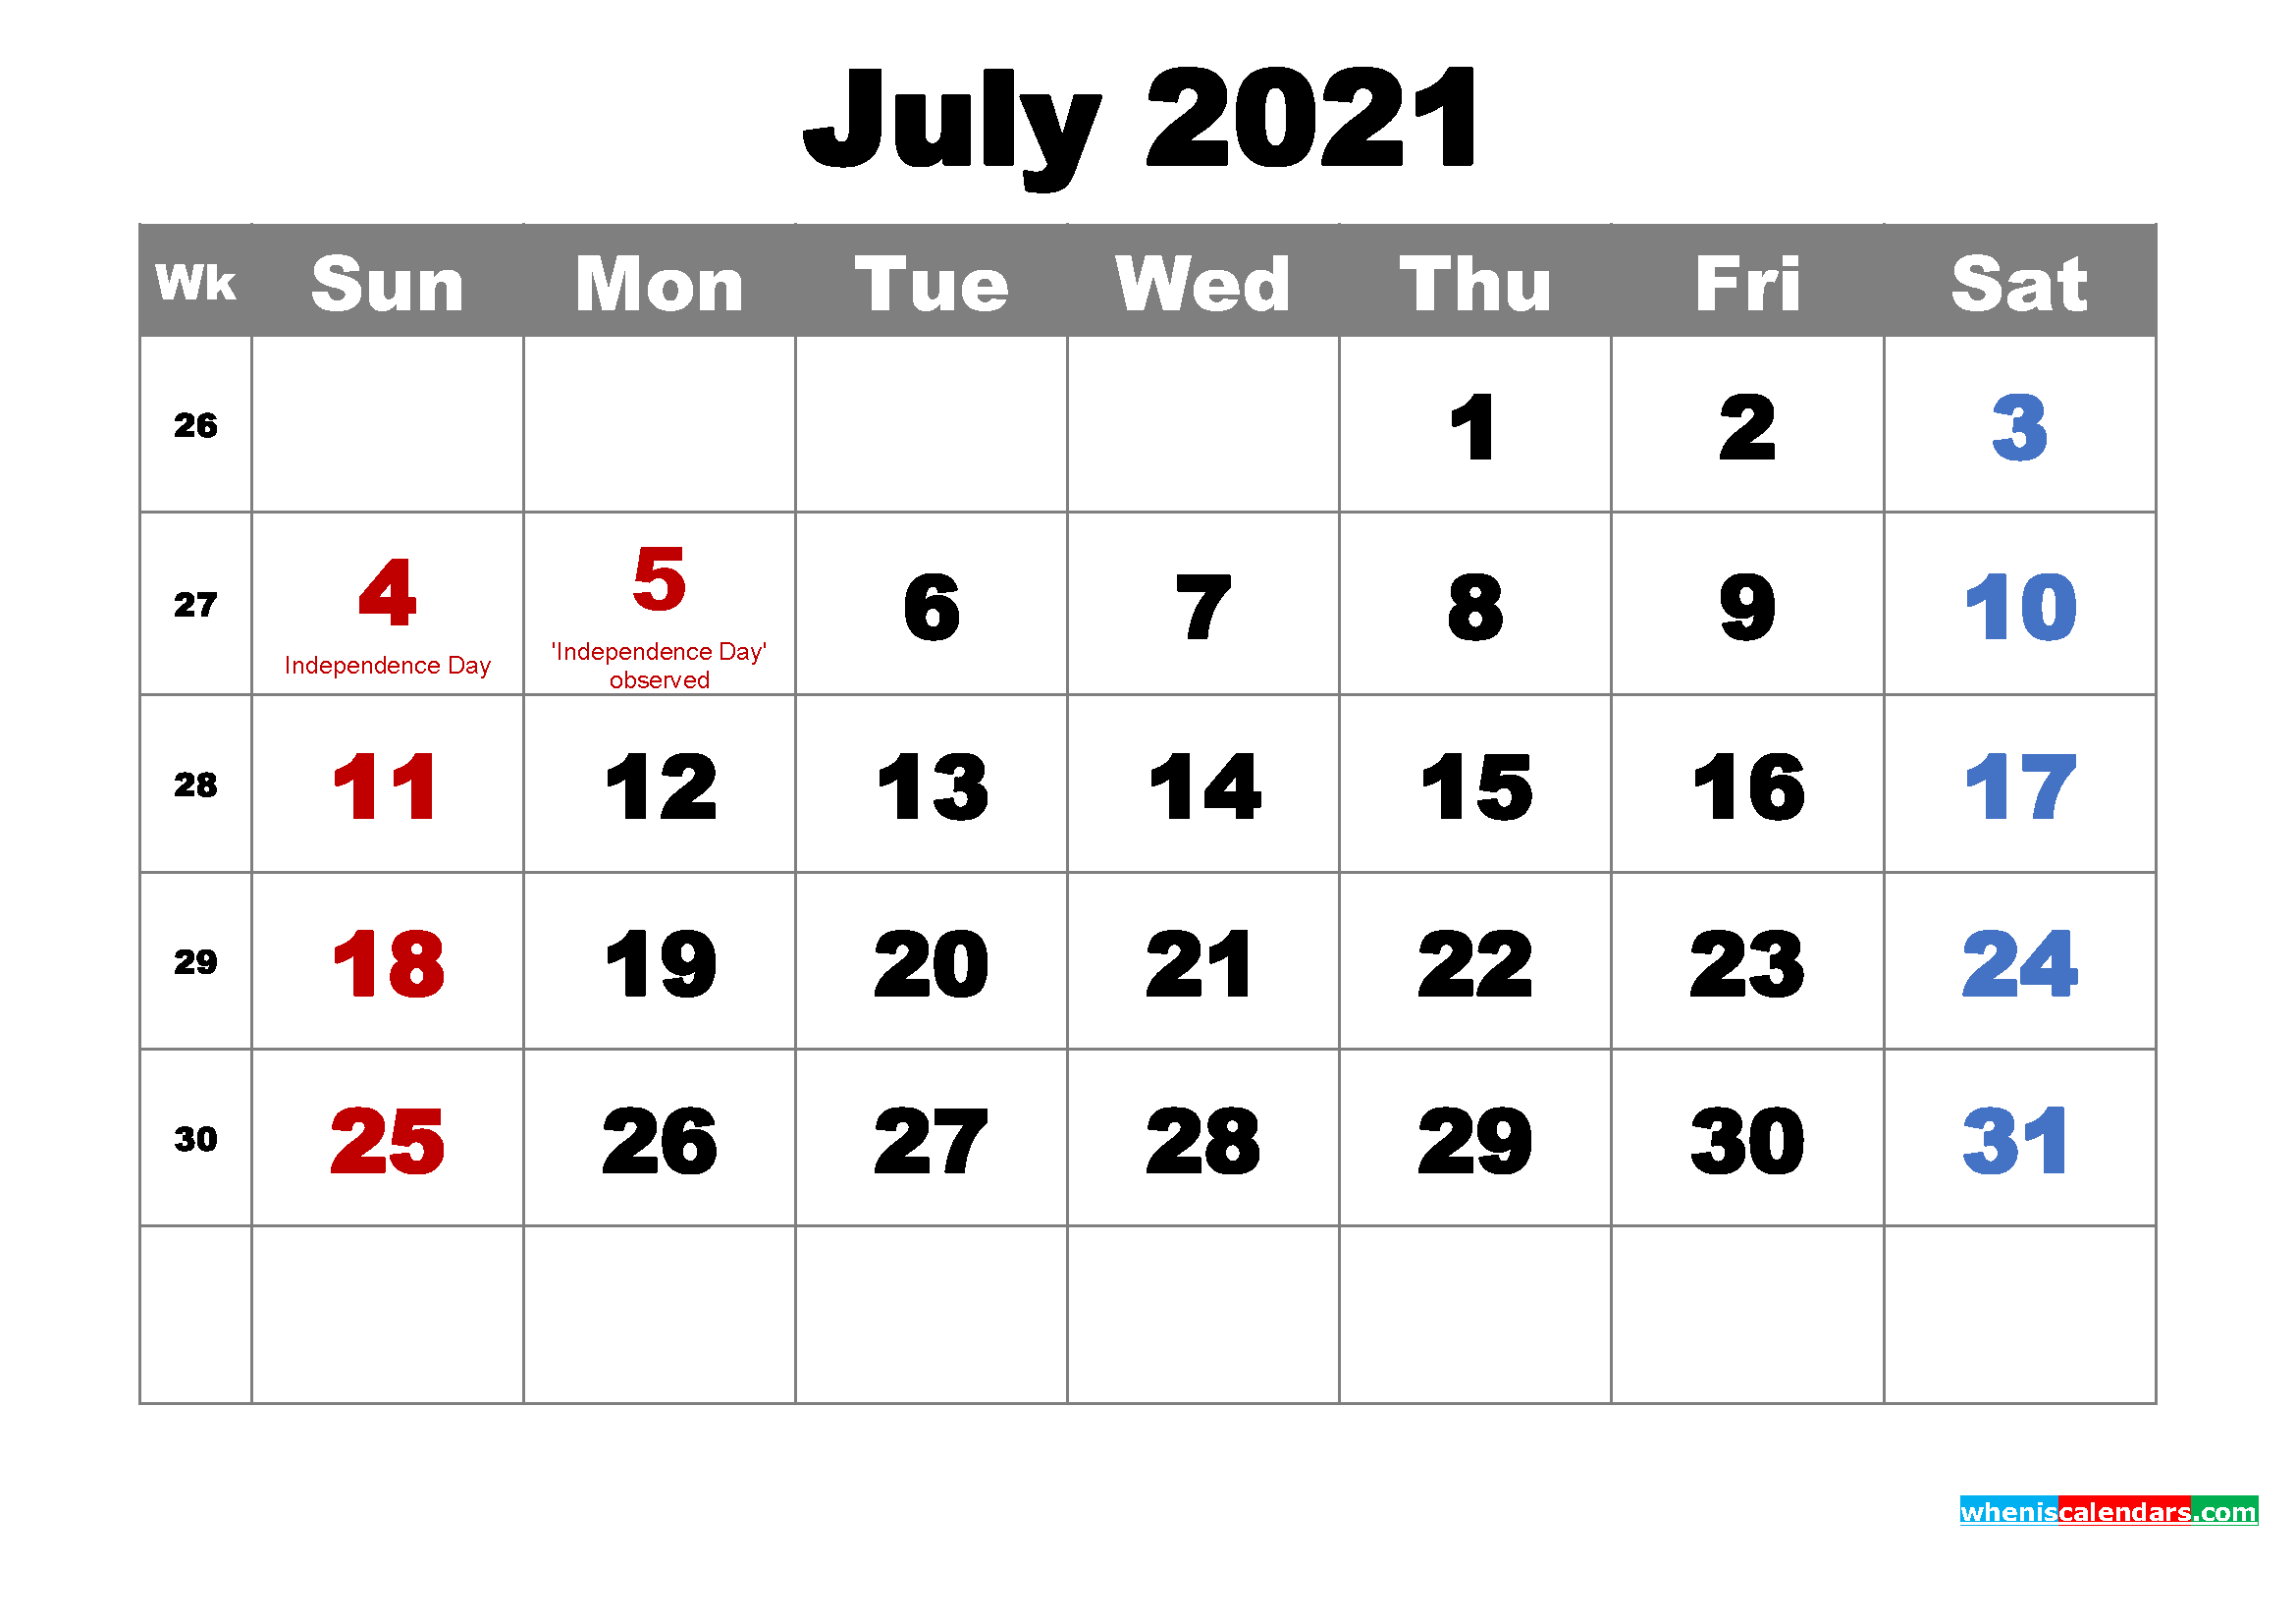 Printable July 2021 Calendar by Month